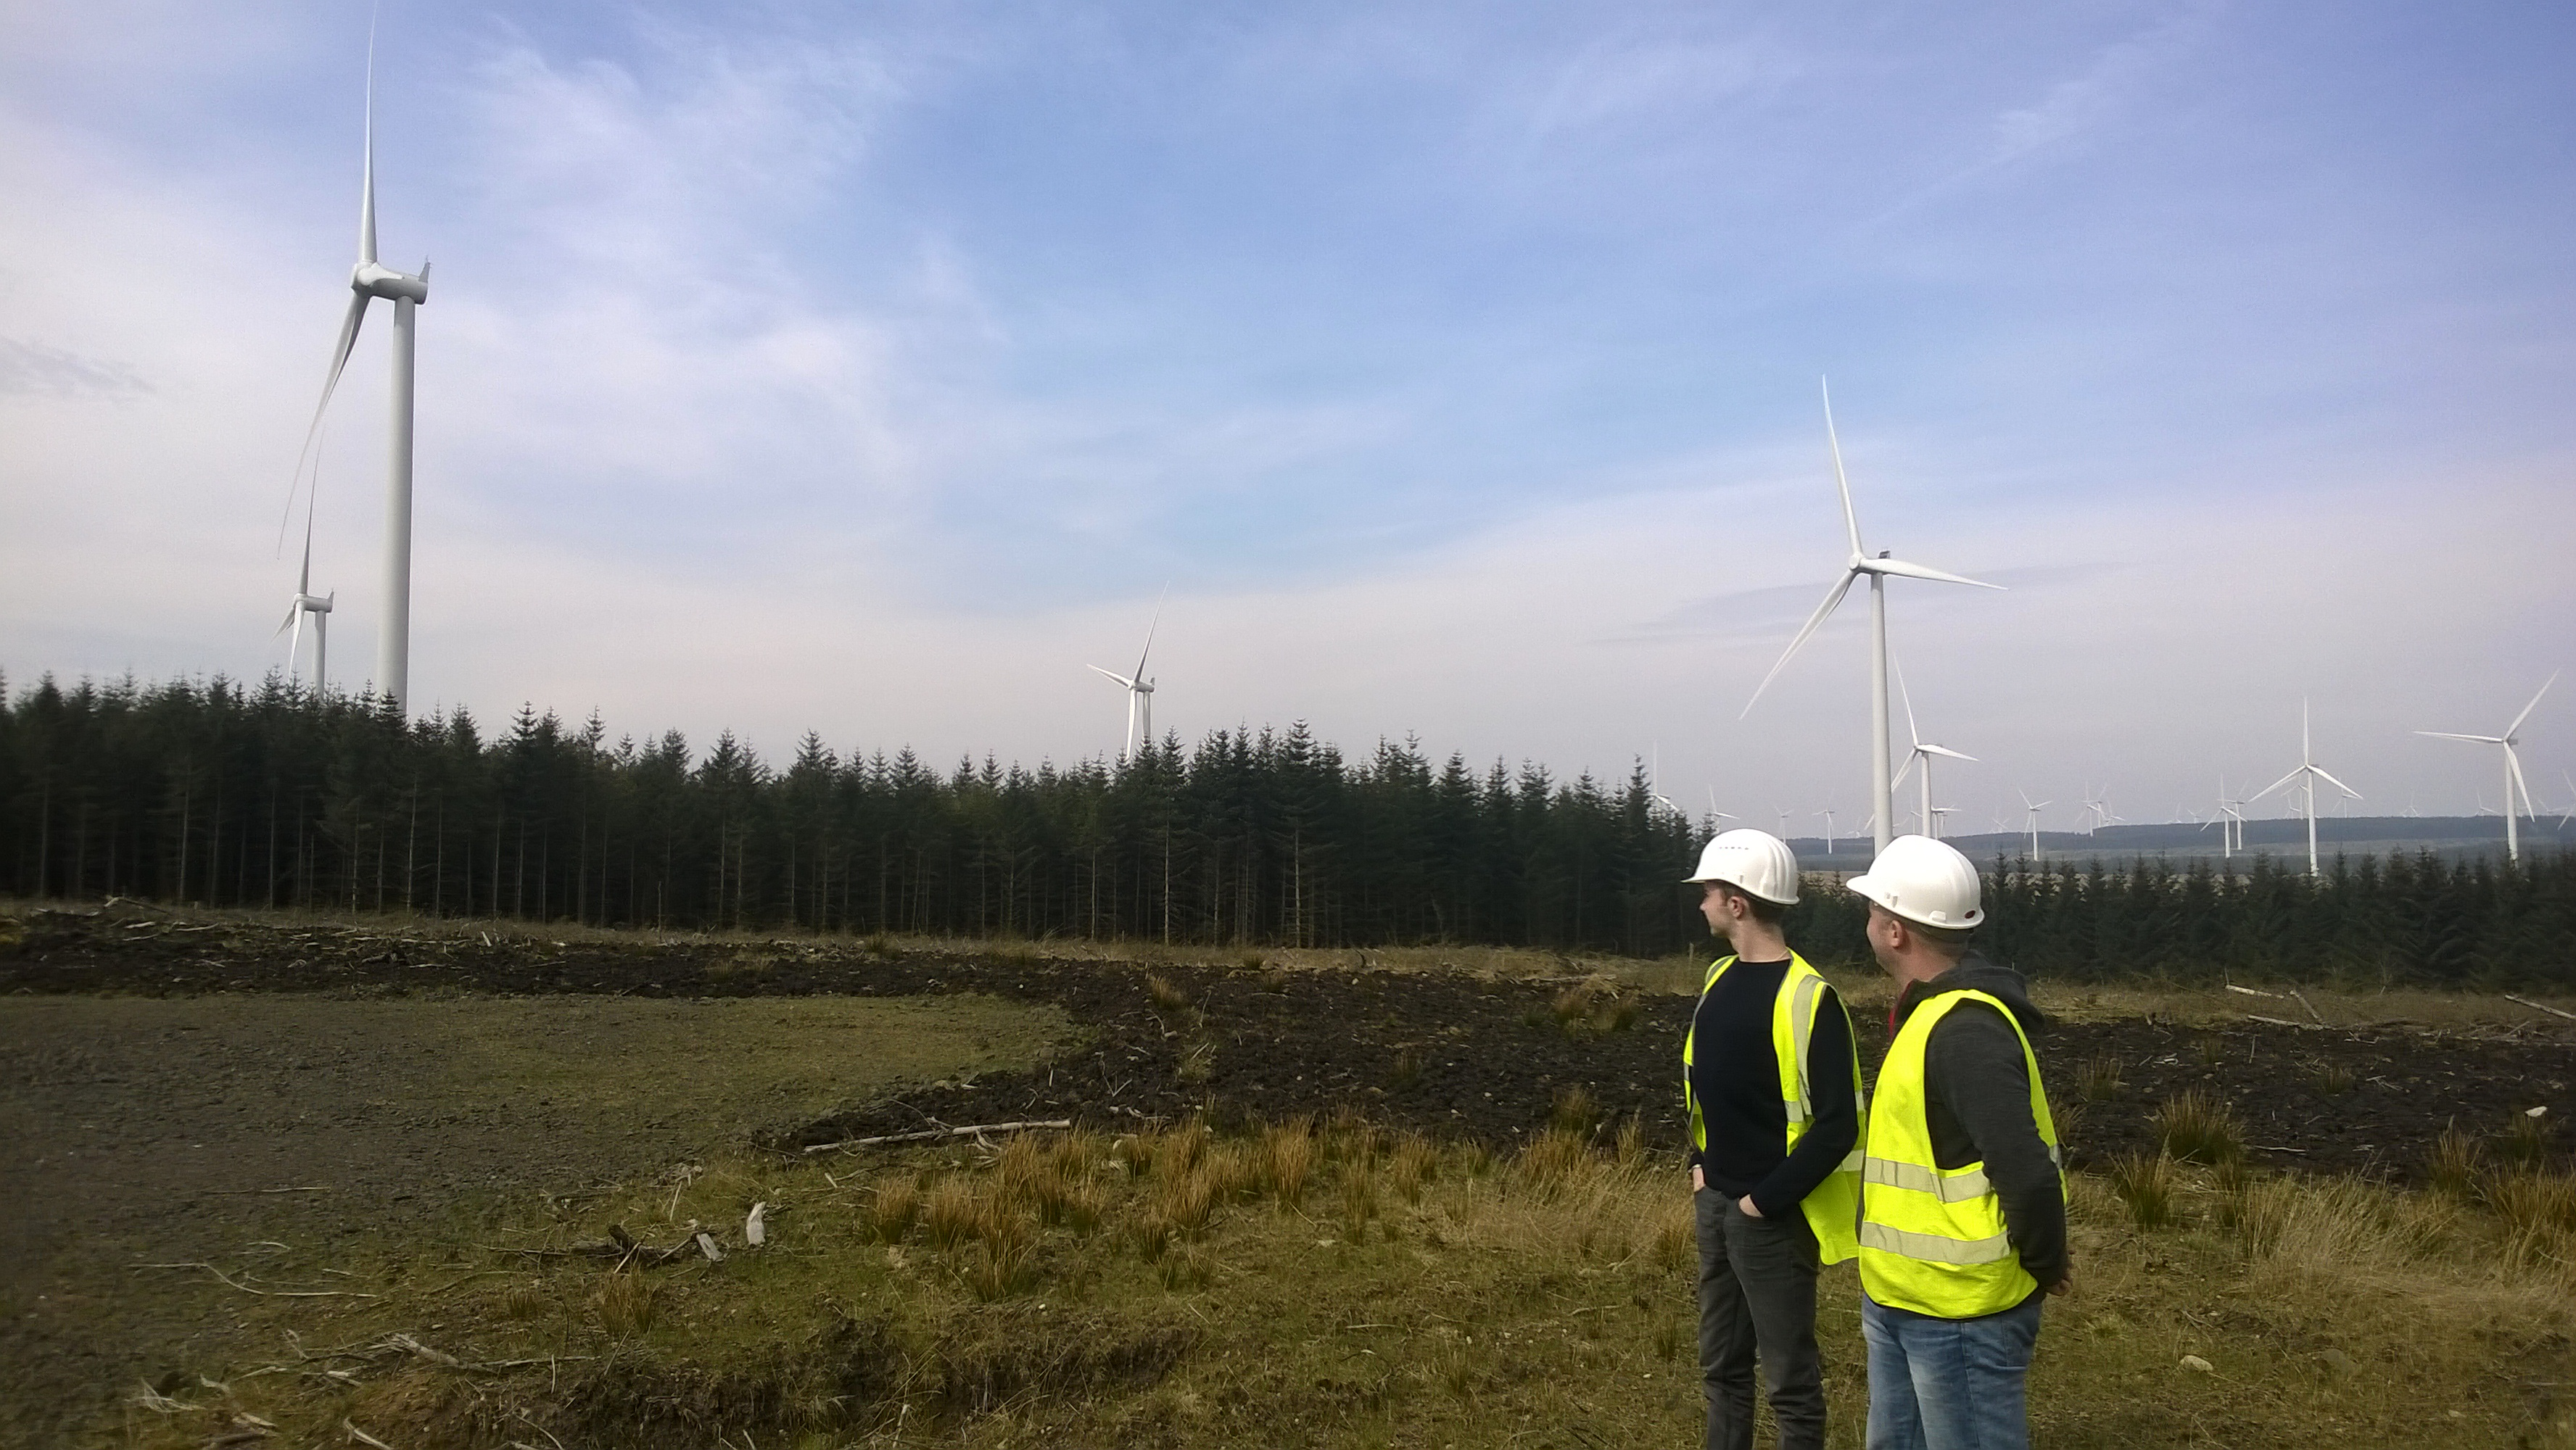 Ayrshire College Students, Andrew & Rhys visit Calder Water Community Windfarm in South Lanarkshire